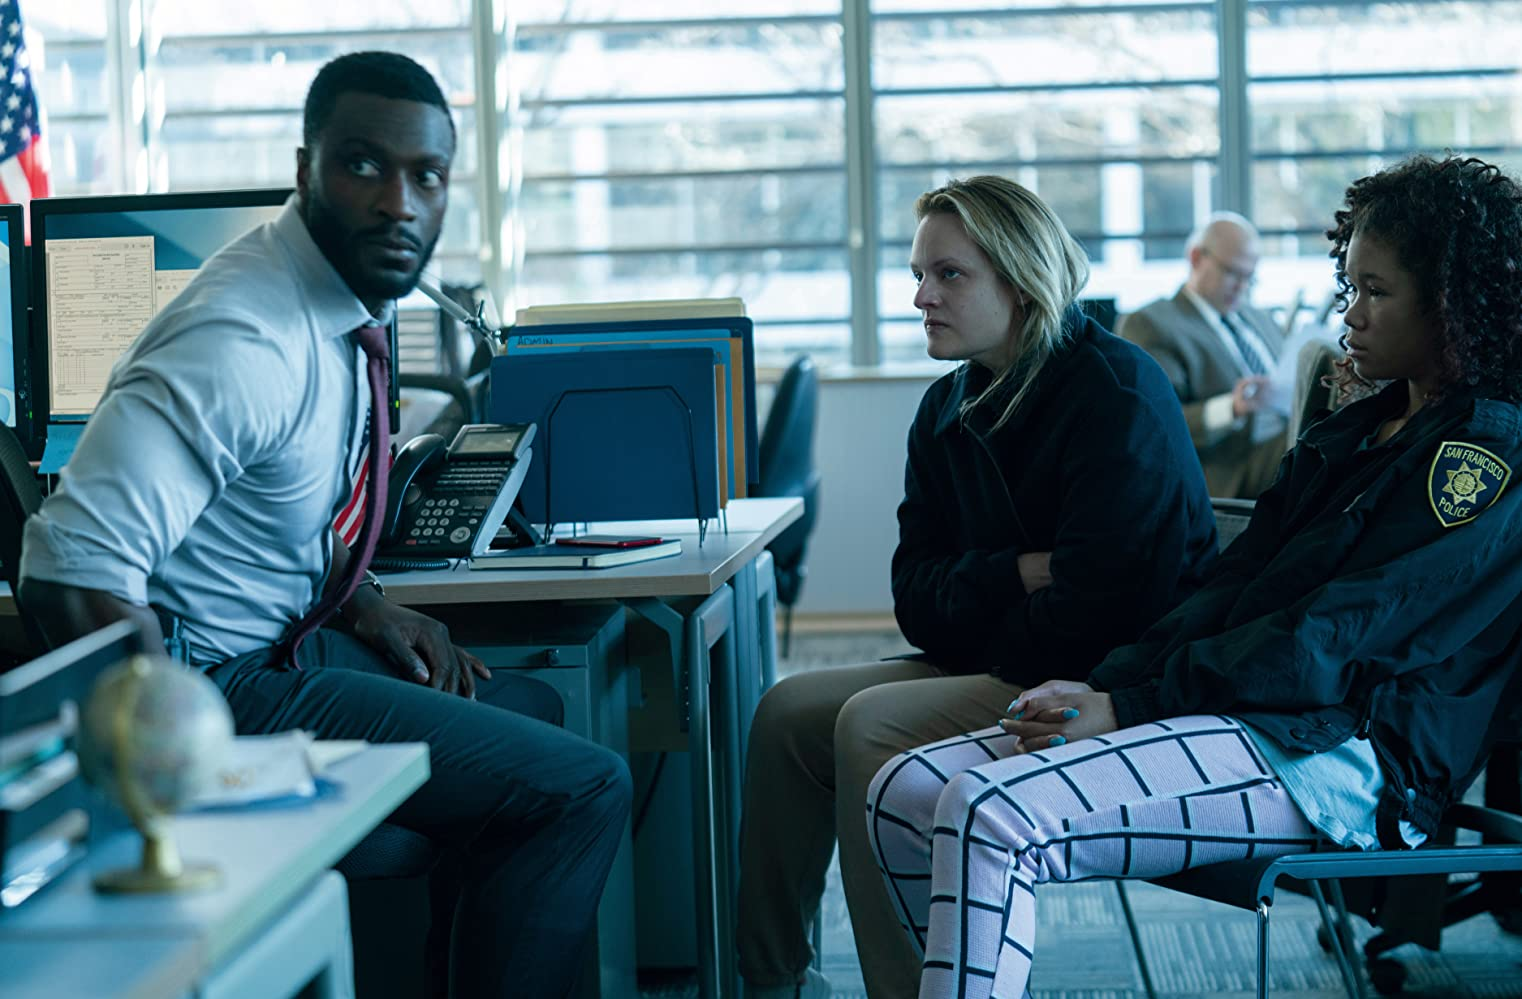 Elisabeth Moss, Aldis Hodge, and Storm Reid in The Invisible Man (2020)